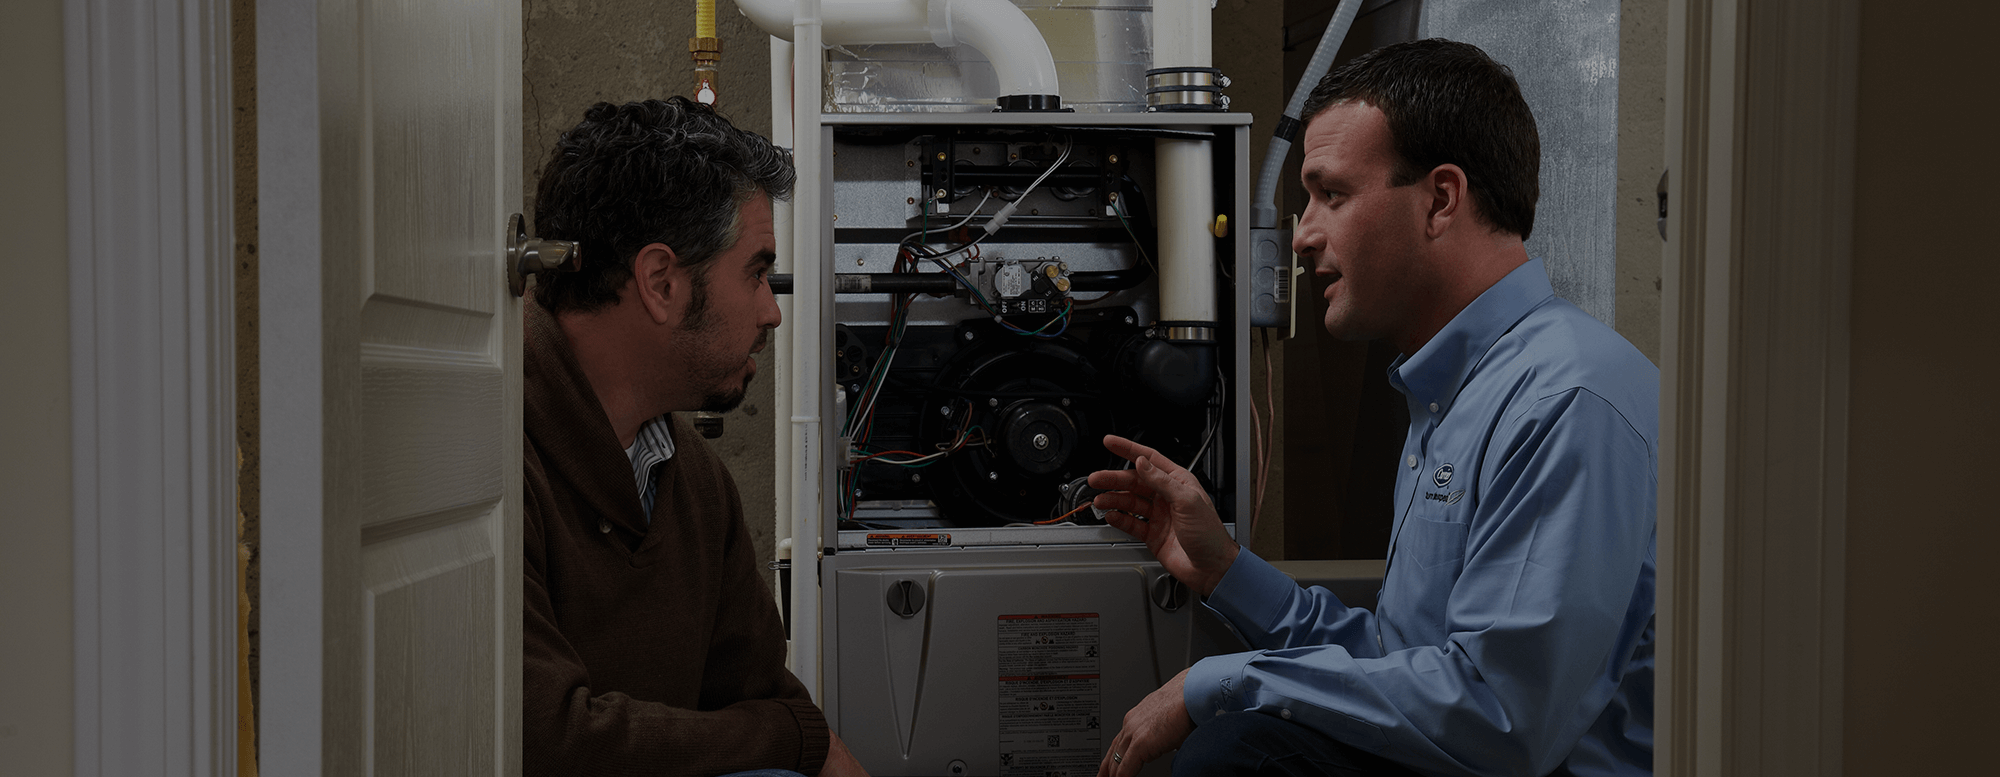 Schedule Service | Stiles Heating, Cooling, & Plumbing